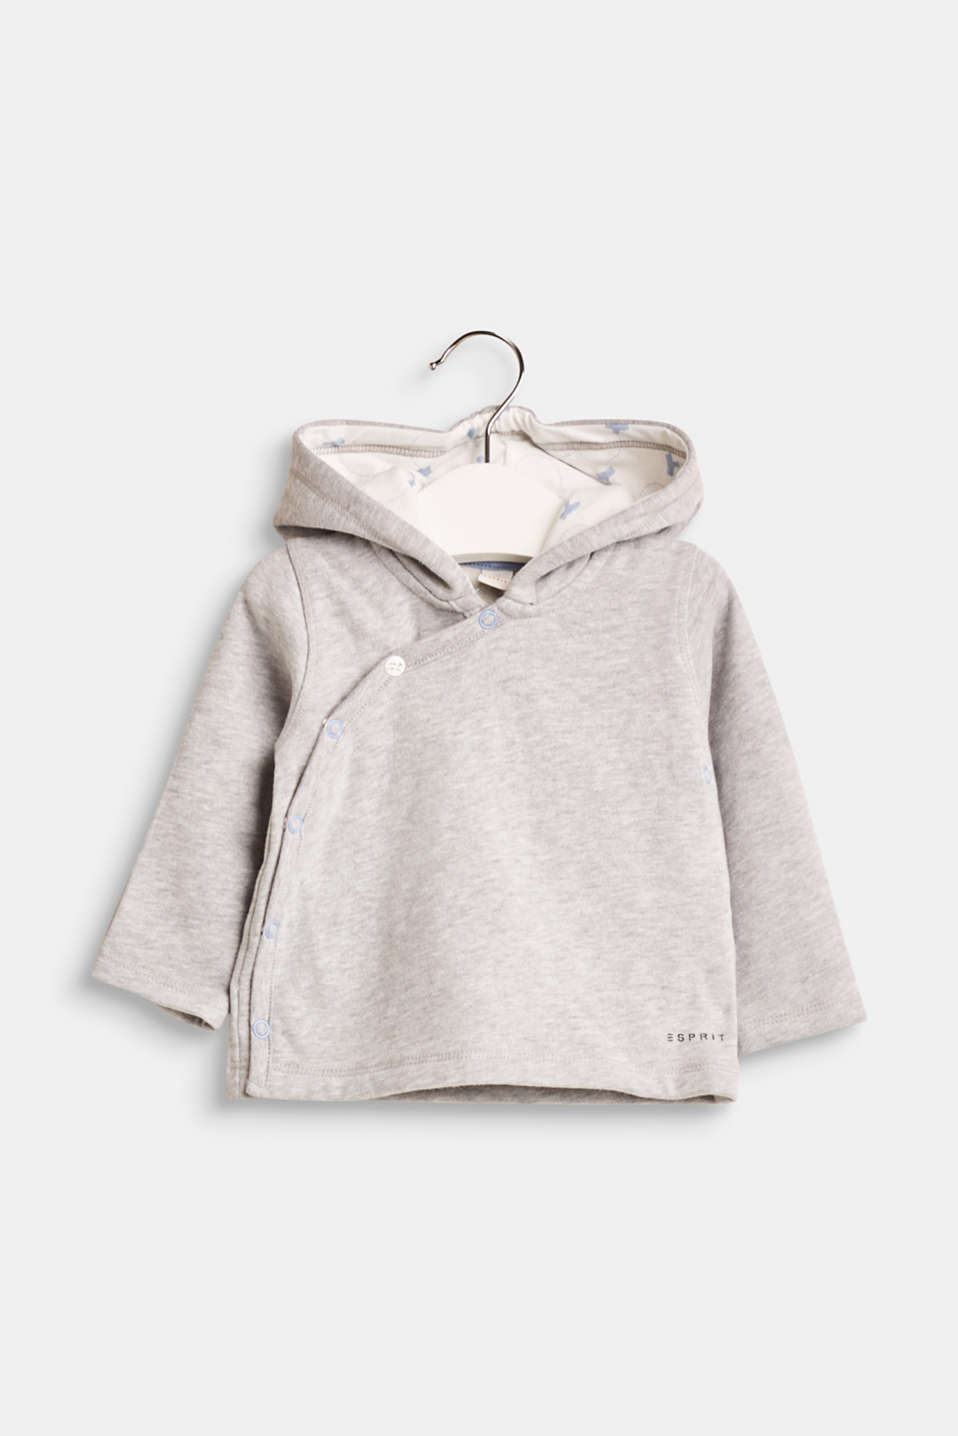 It does not get more adorable! Little ears on the hood make this sweatshirt jacket a super adorable eye-catcher with a fluffy interior and valuable organic cotton.